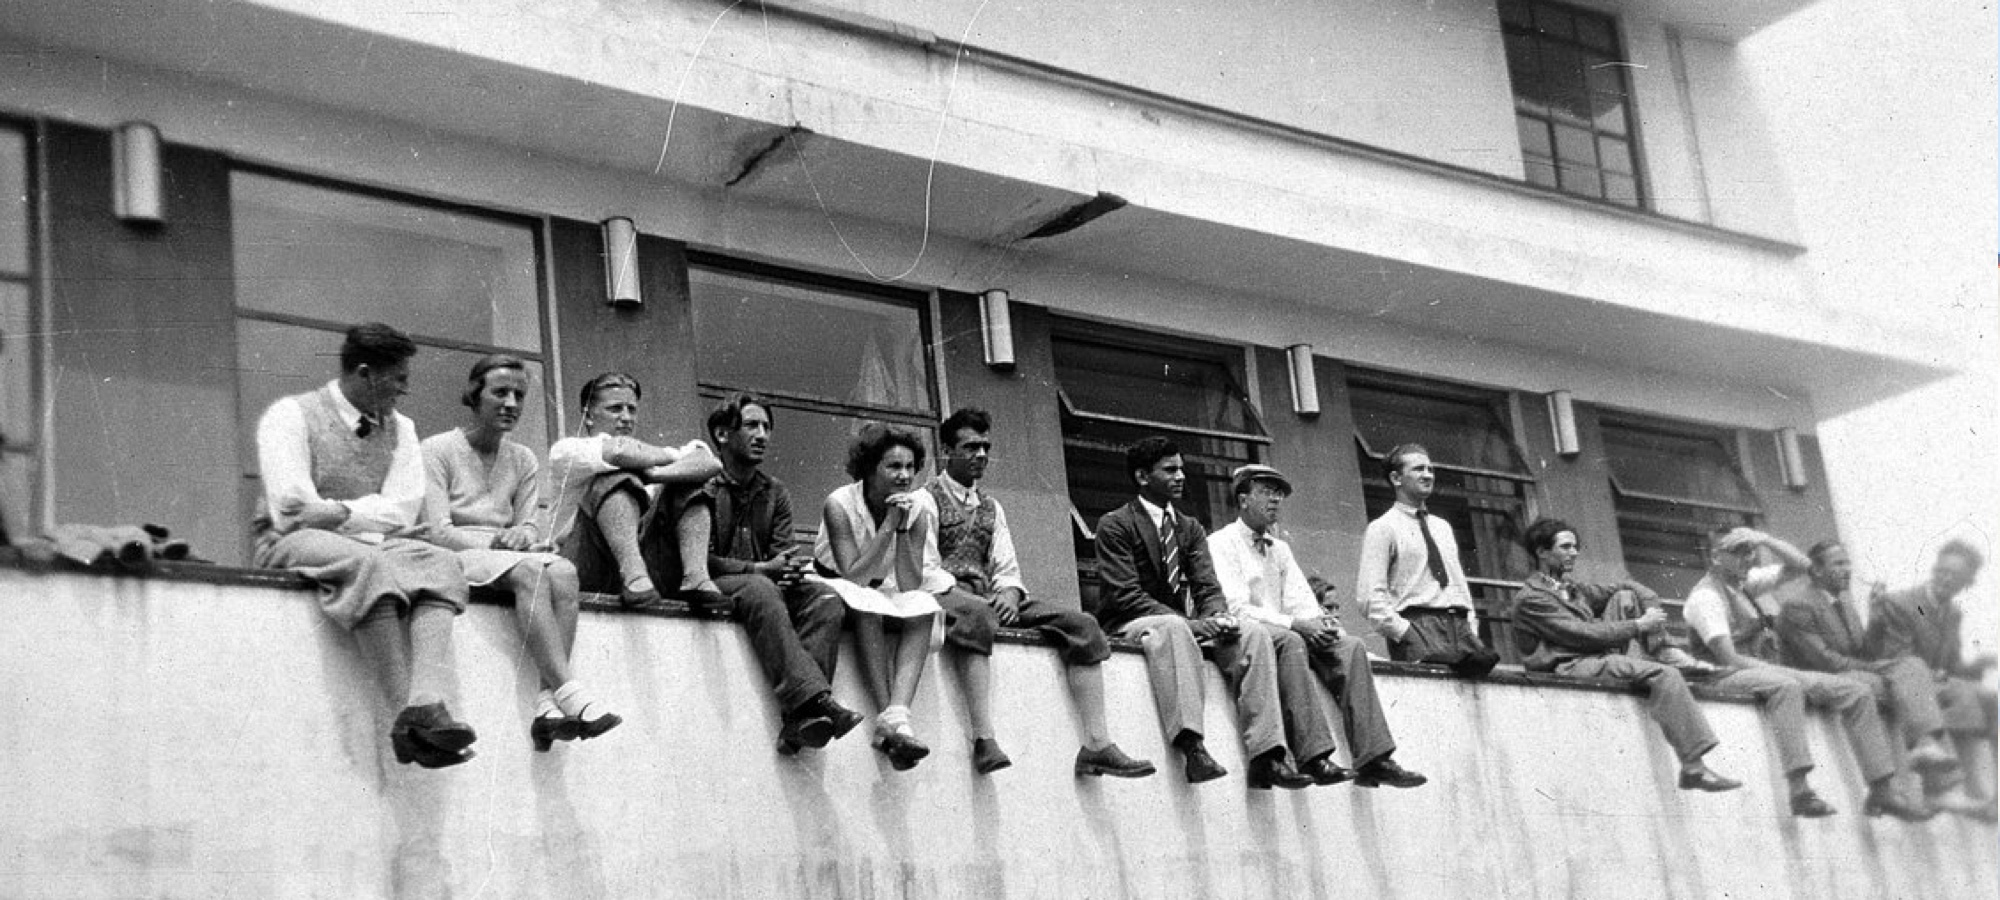 Bauhaus students on a balcony.